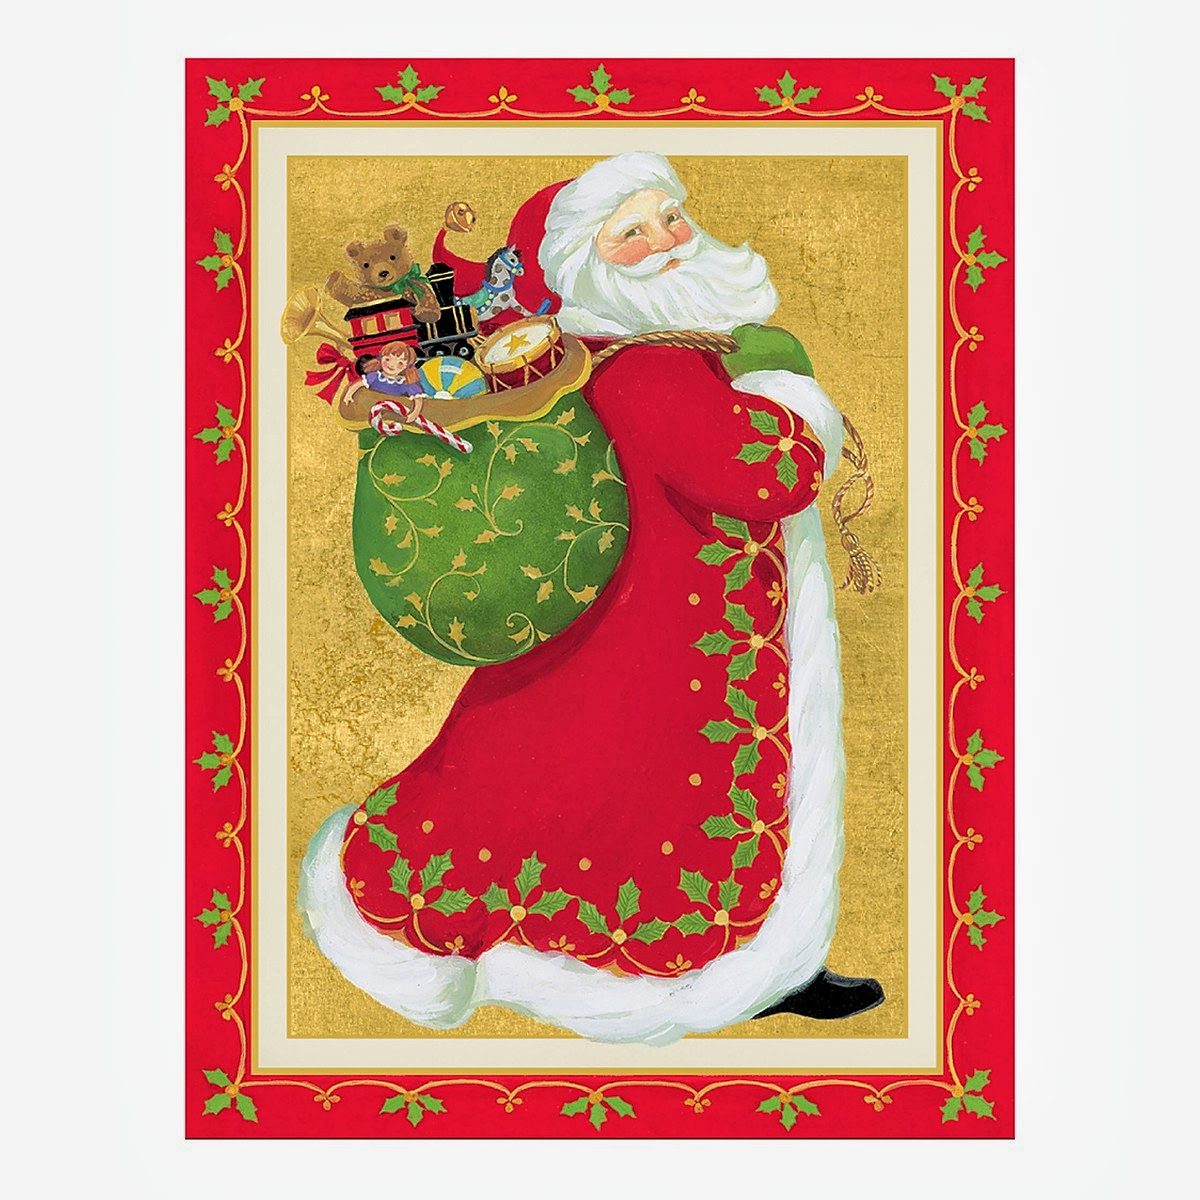 Best Christmas Greetings Christmas Cards Greetings. Nursing Schools In Marietta Ga. Email List Management Service. Sandhills Moving And Storage. Phoenix University Michigan Att Uverse Areas. Online Accounting Programs Free. Hair Transplants For Women Cost. Berlin City Toyota Maine Least Expensive Suvs. Laser Treatments Los Angeles